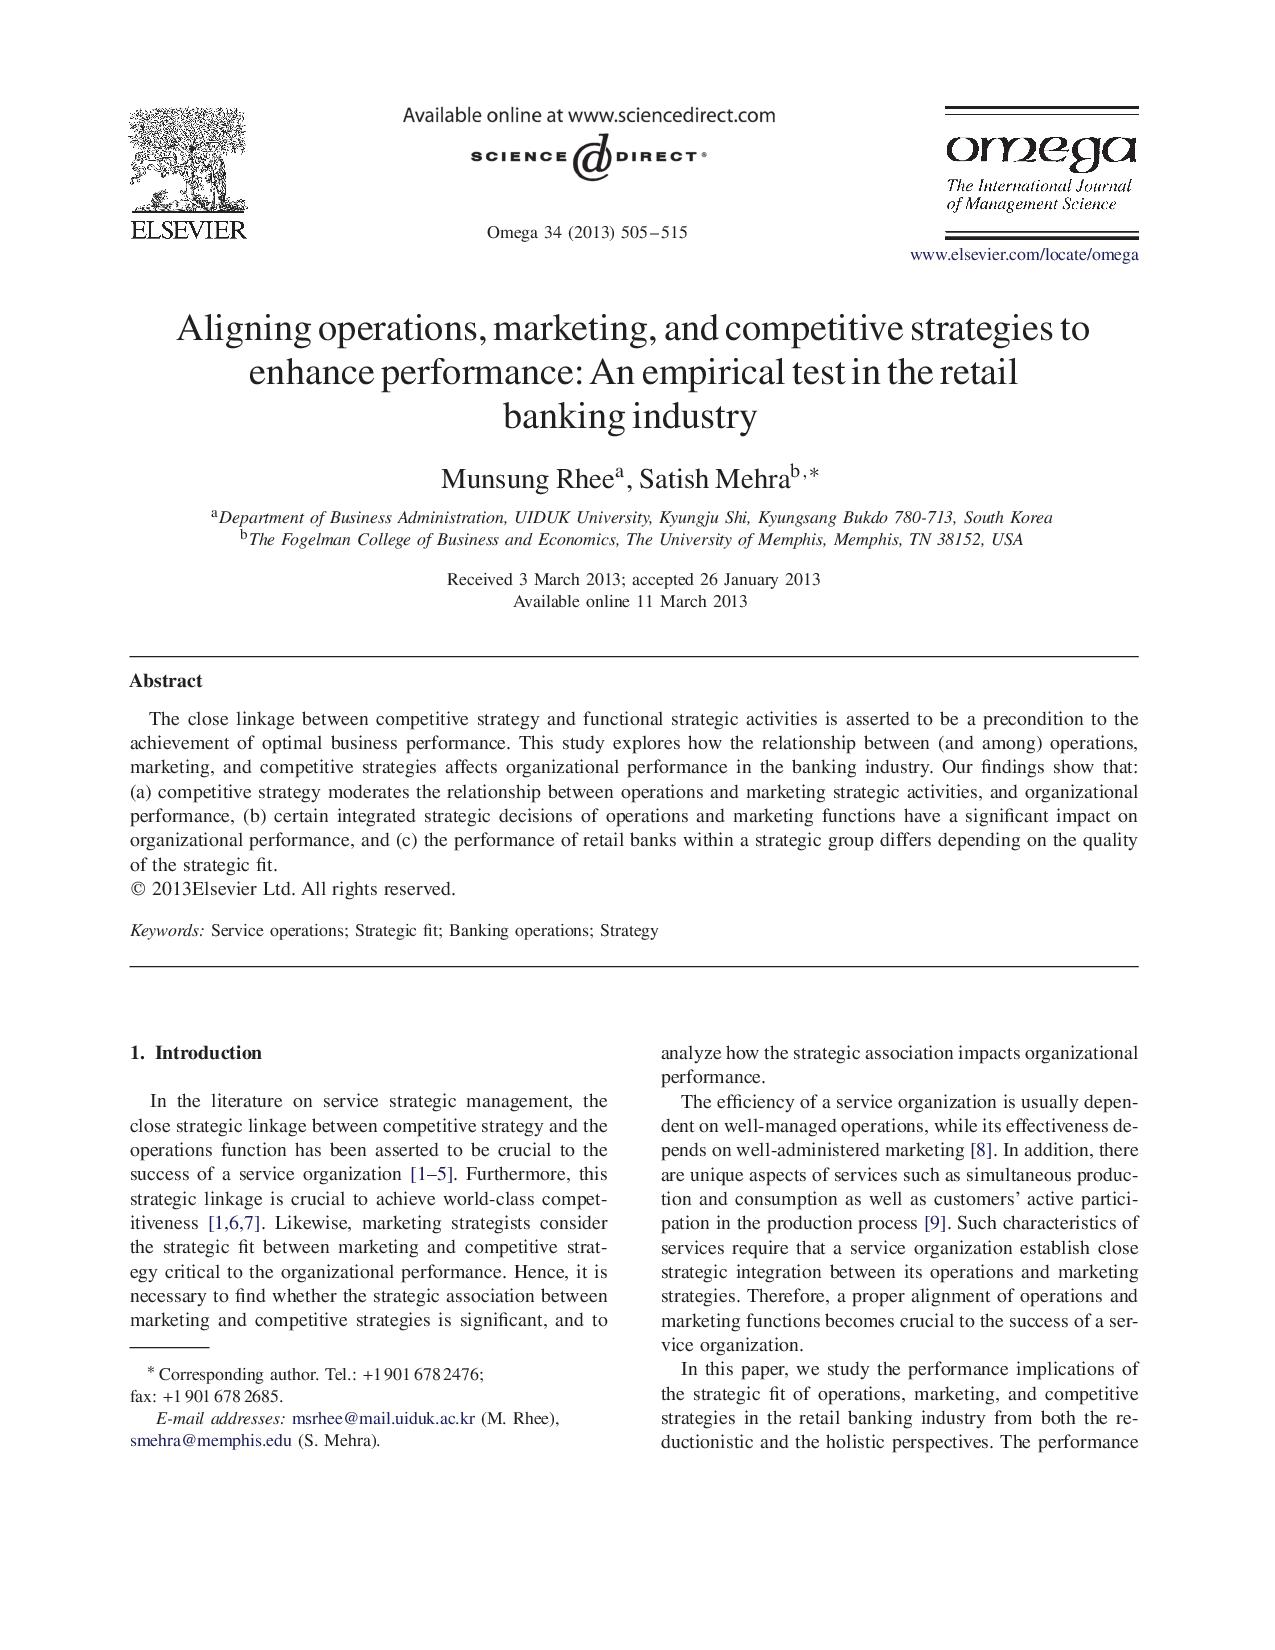 Aligning operations, marketing, and competitive strategies to enhance performance:An empirical test in the retail banking industry